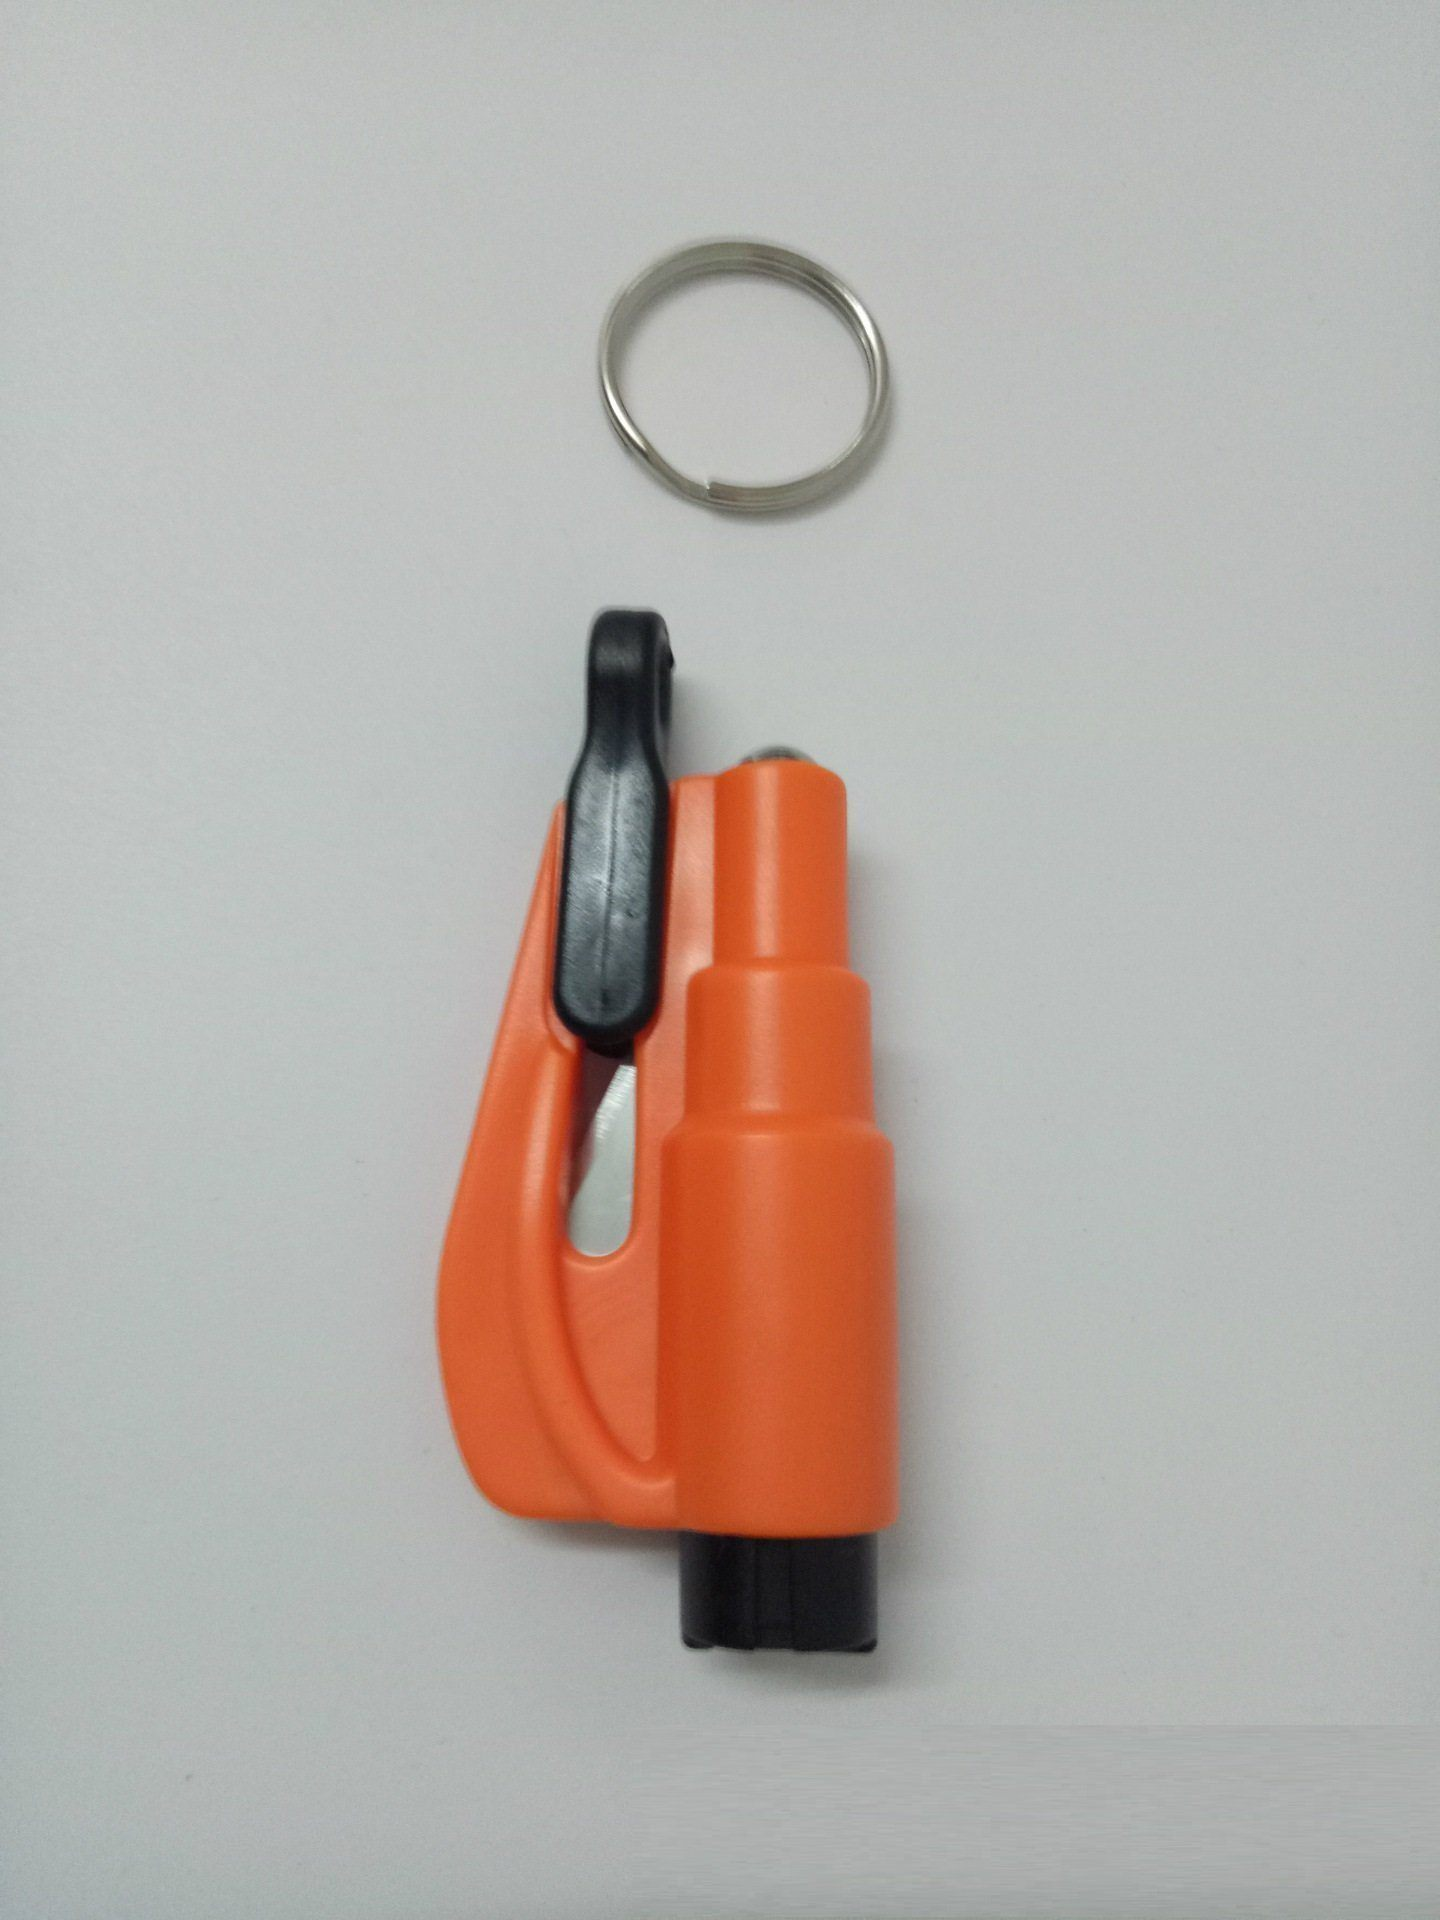 EscapeMyself (seat Belt Cutter And Window Breaker)